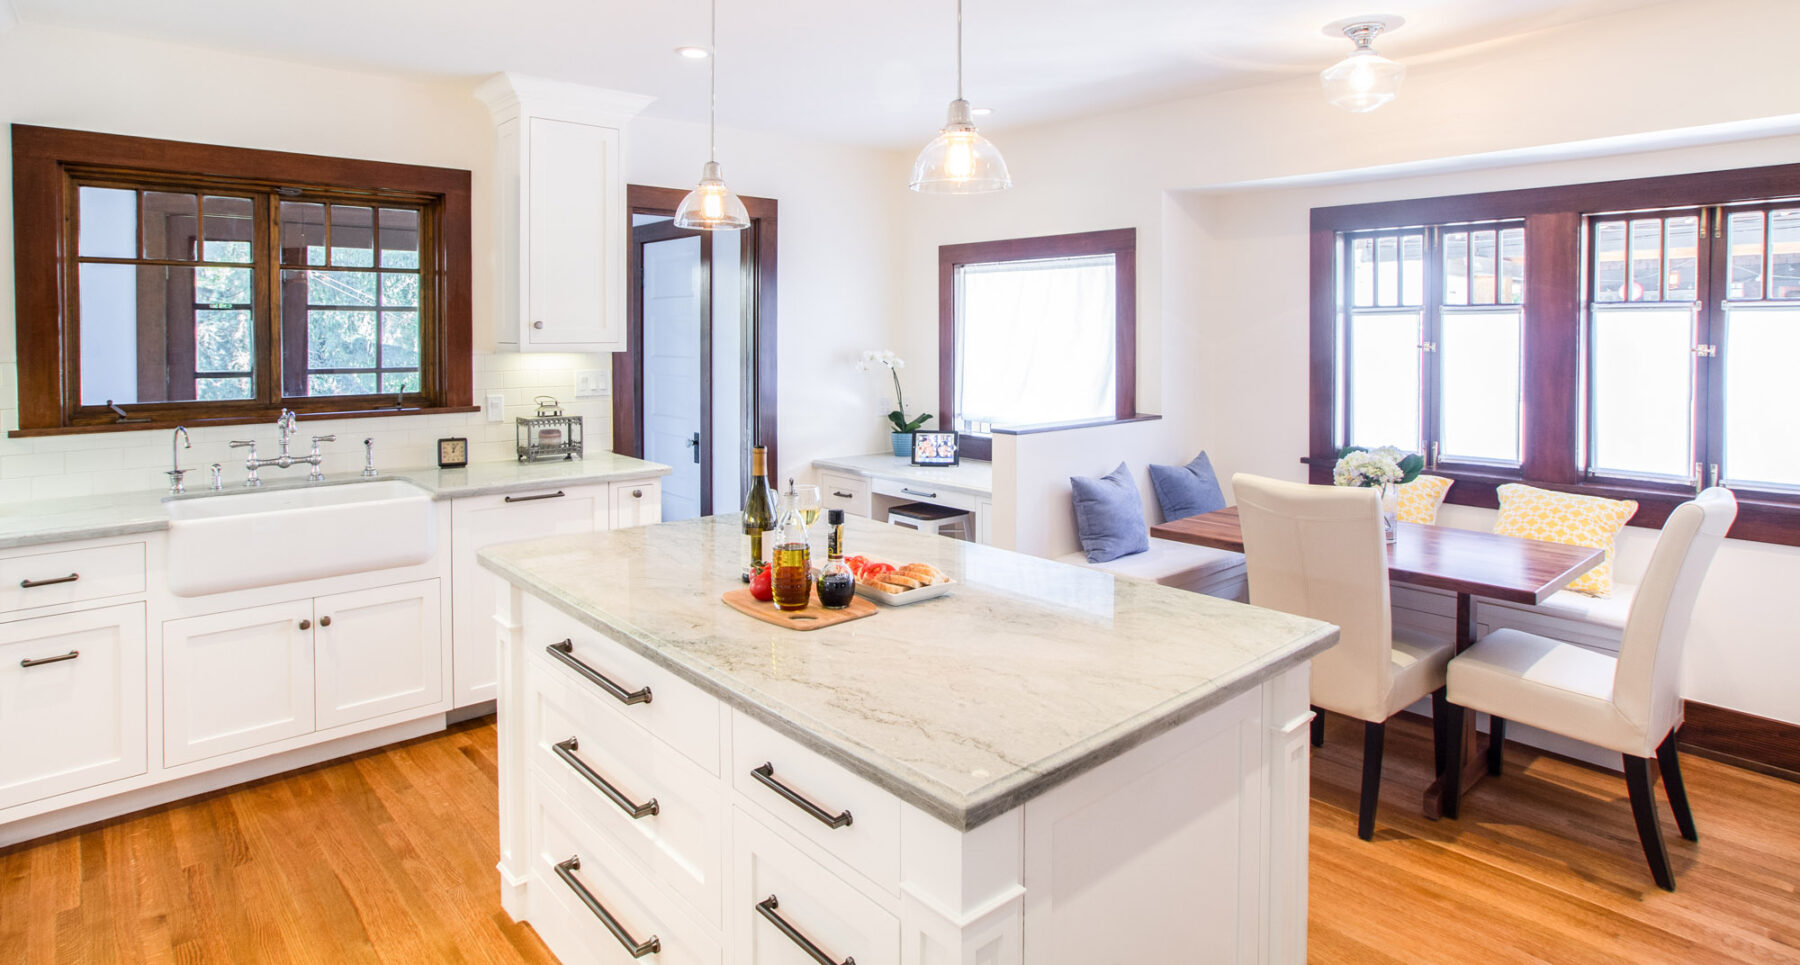 This 1910 Craftsman kitchen remodel in white and period style fixtures